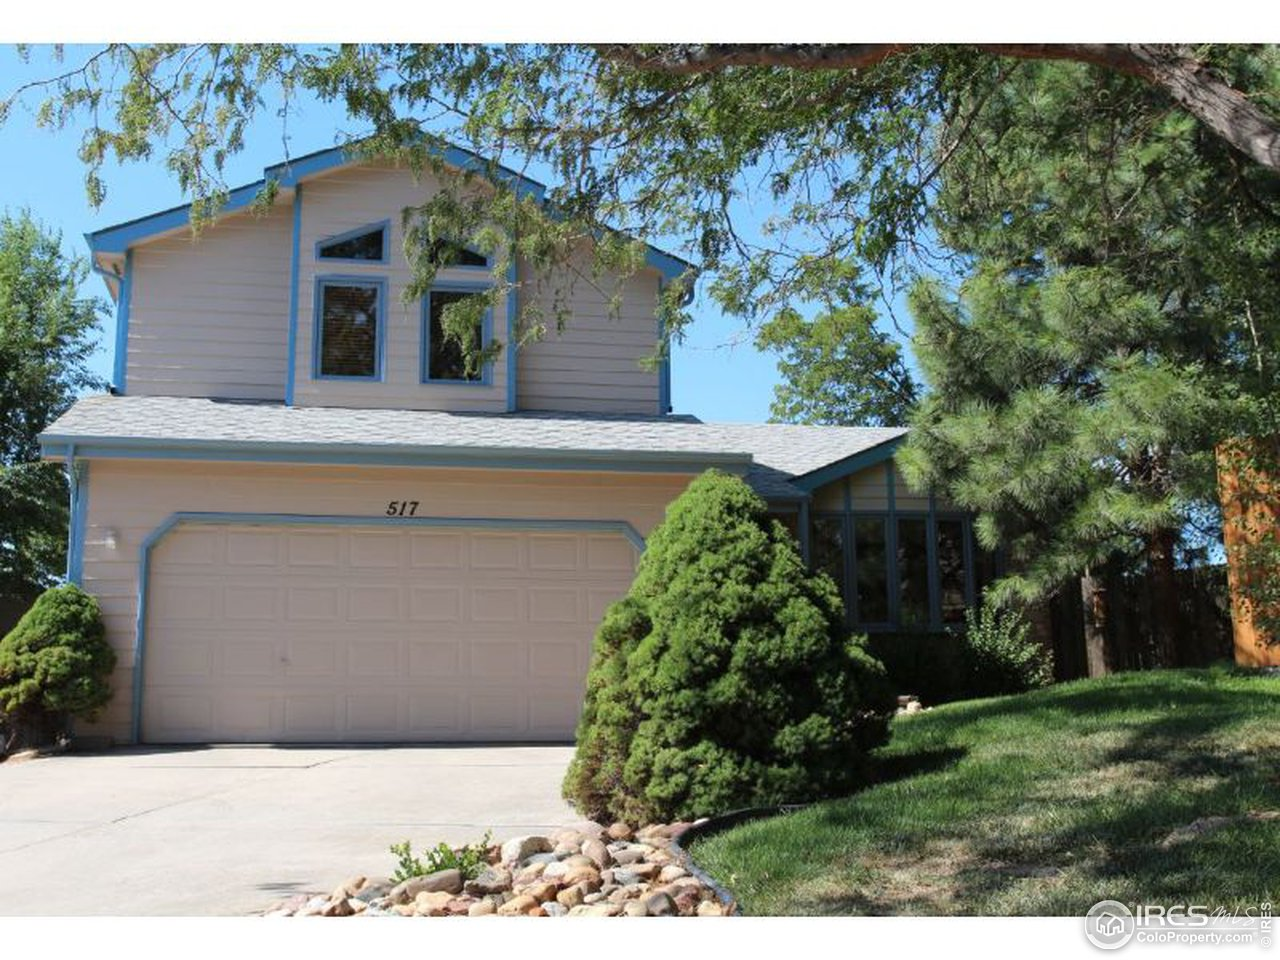 517 S 9th St Loveland Home Listings - Team Cook Real Estate